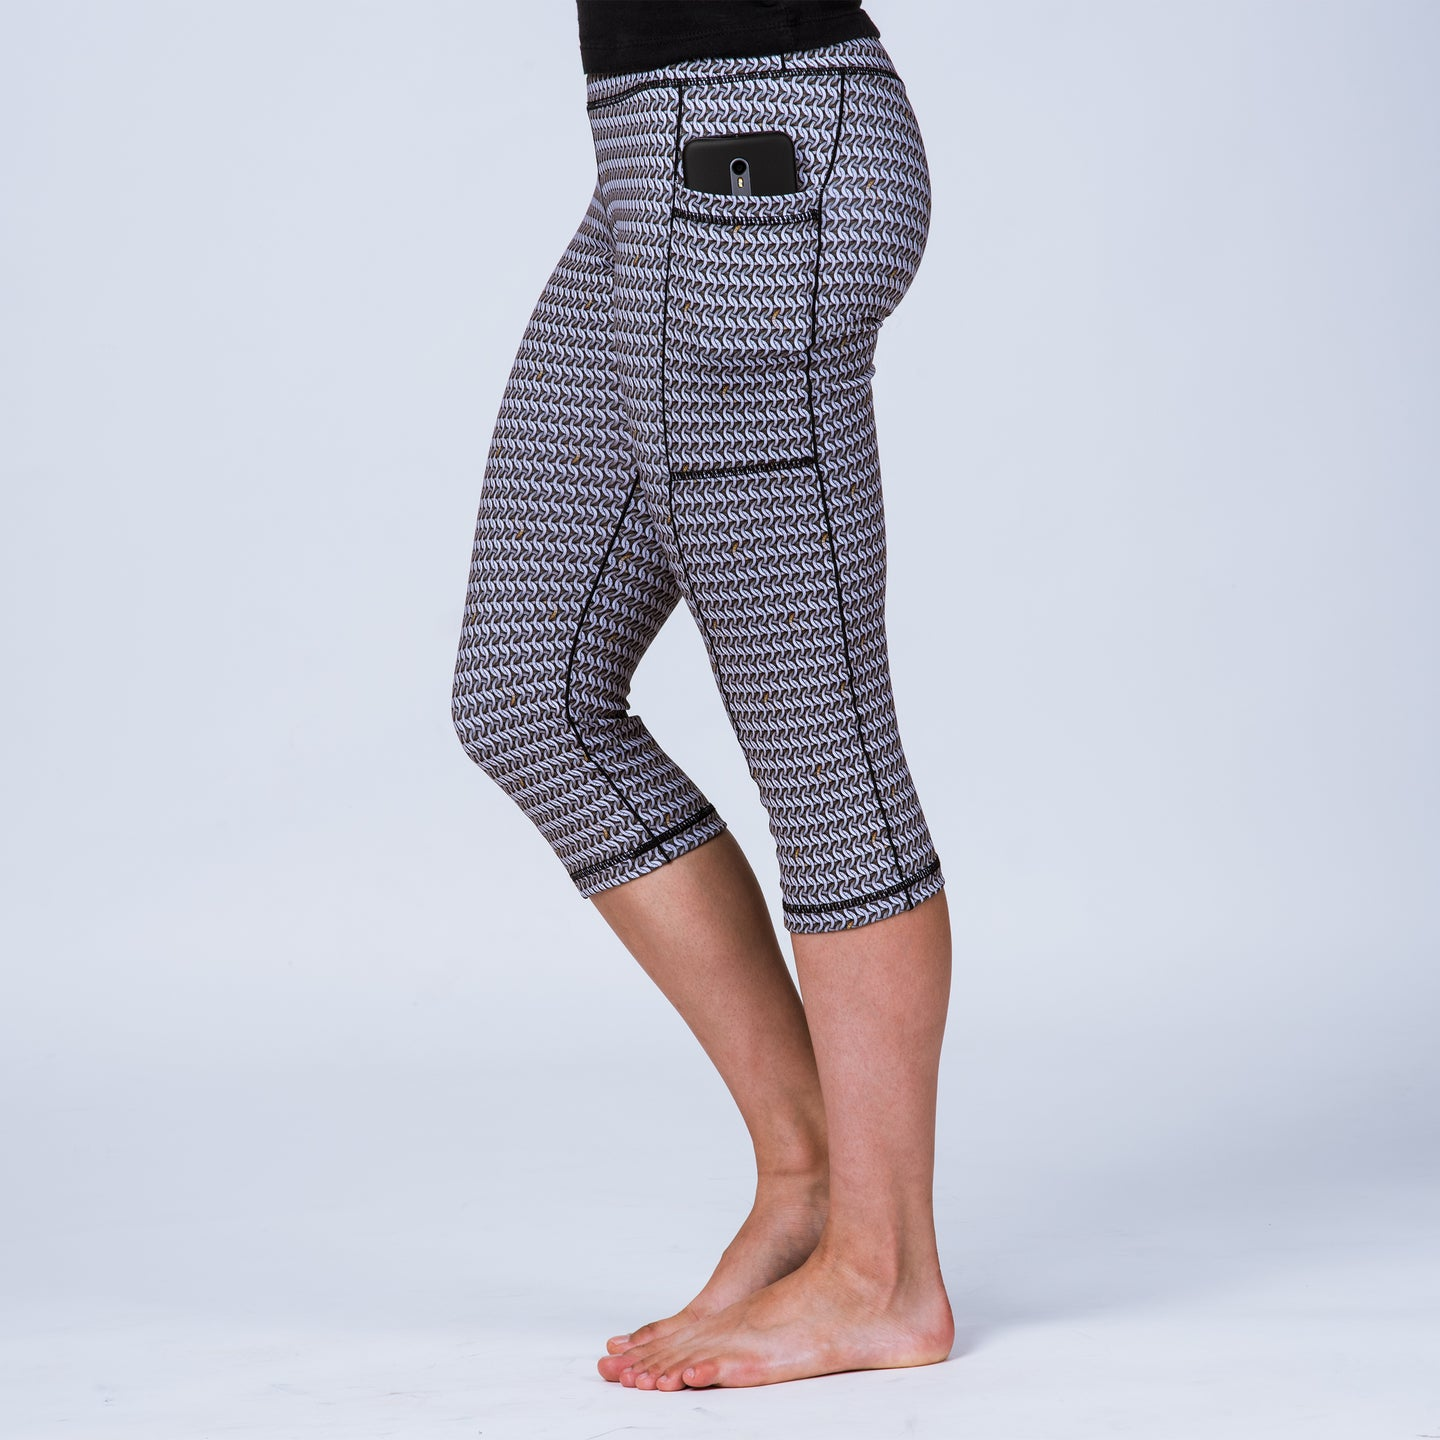 The Maille Capris